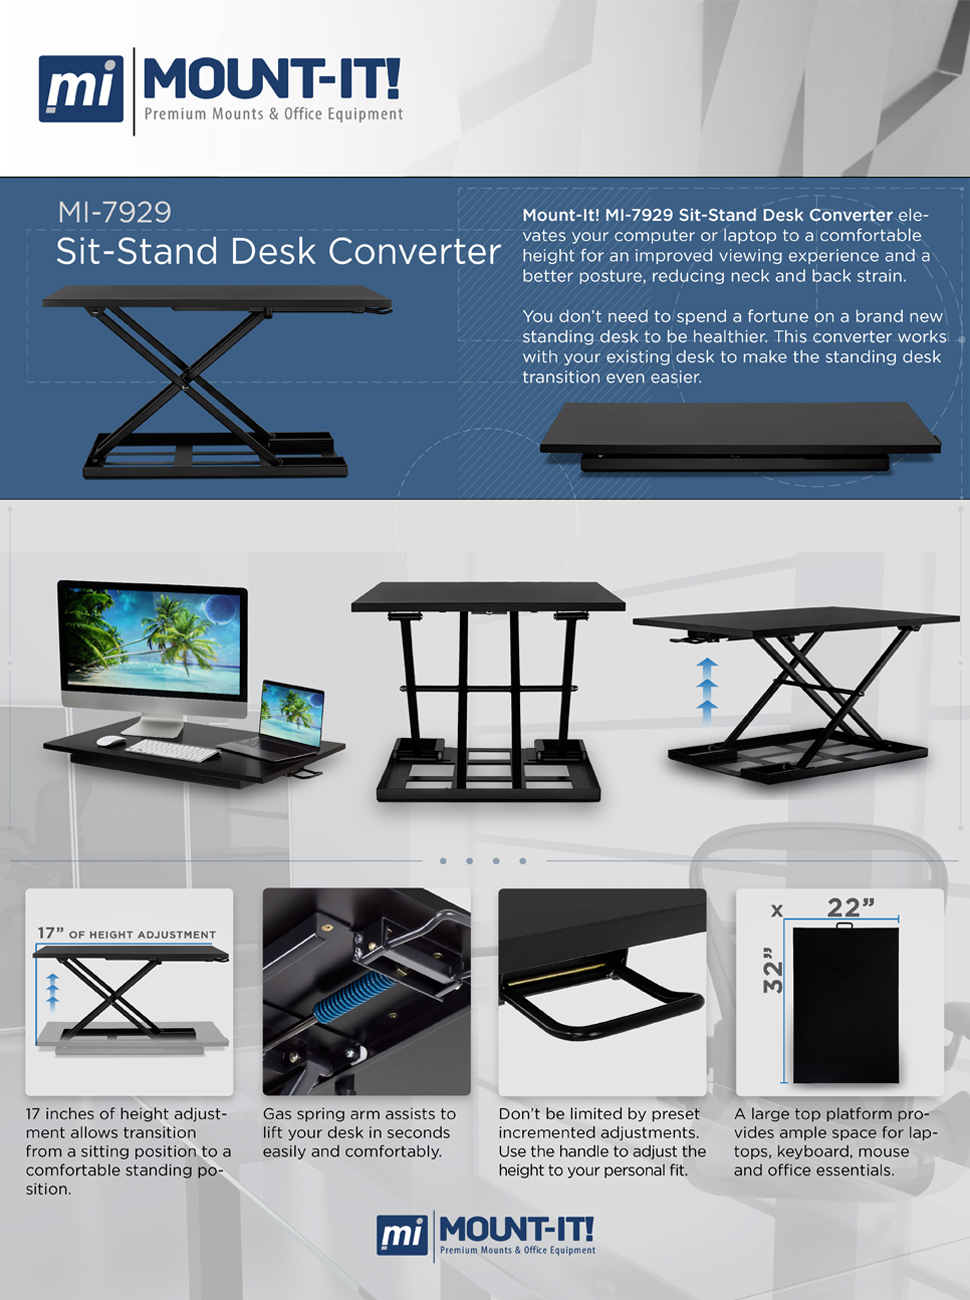 mountit ergonomic height adjustable standing desk standup desk converter holds up to 20 pounds large surface